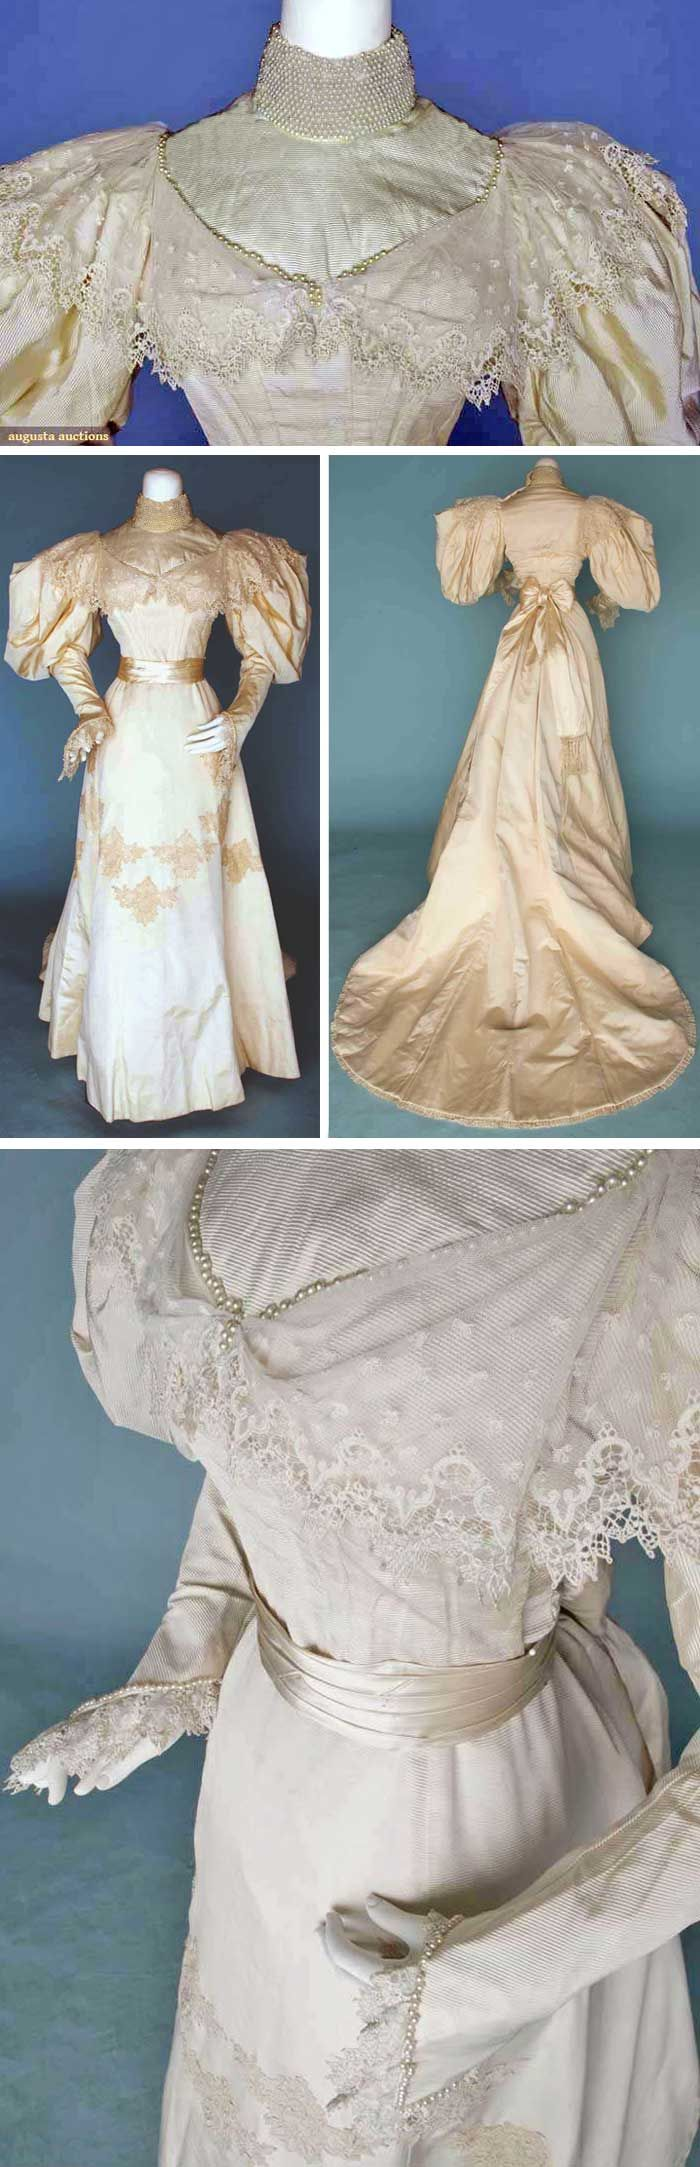 Wedding gown, circa 1895. Two-piece white ribbed silk. Pearl-studded high collar, leg-'o-mutton sleeves. Trained skirt and fringed sash. Via Augusta Auctions.